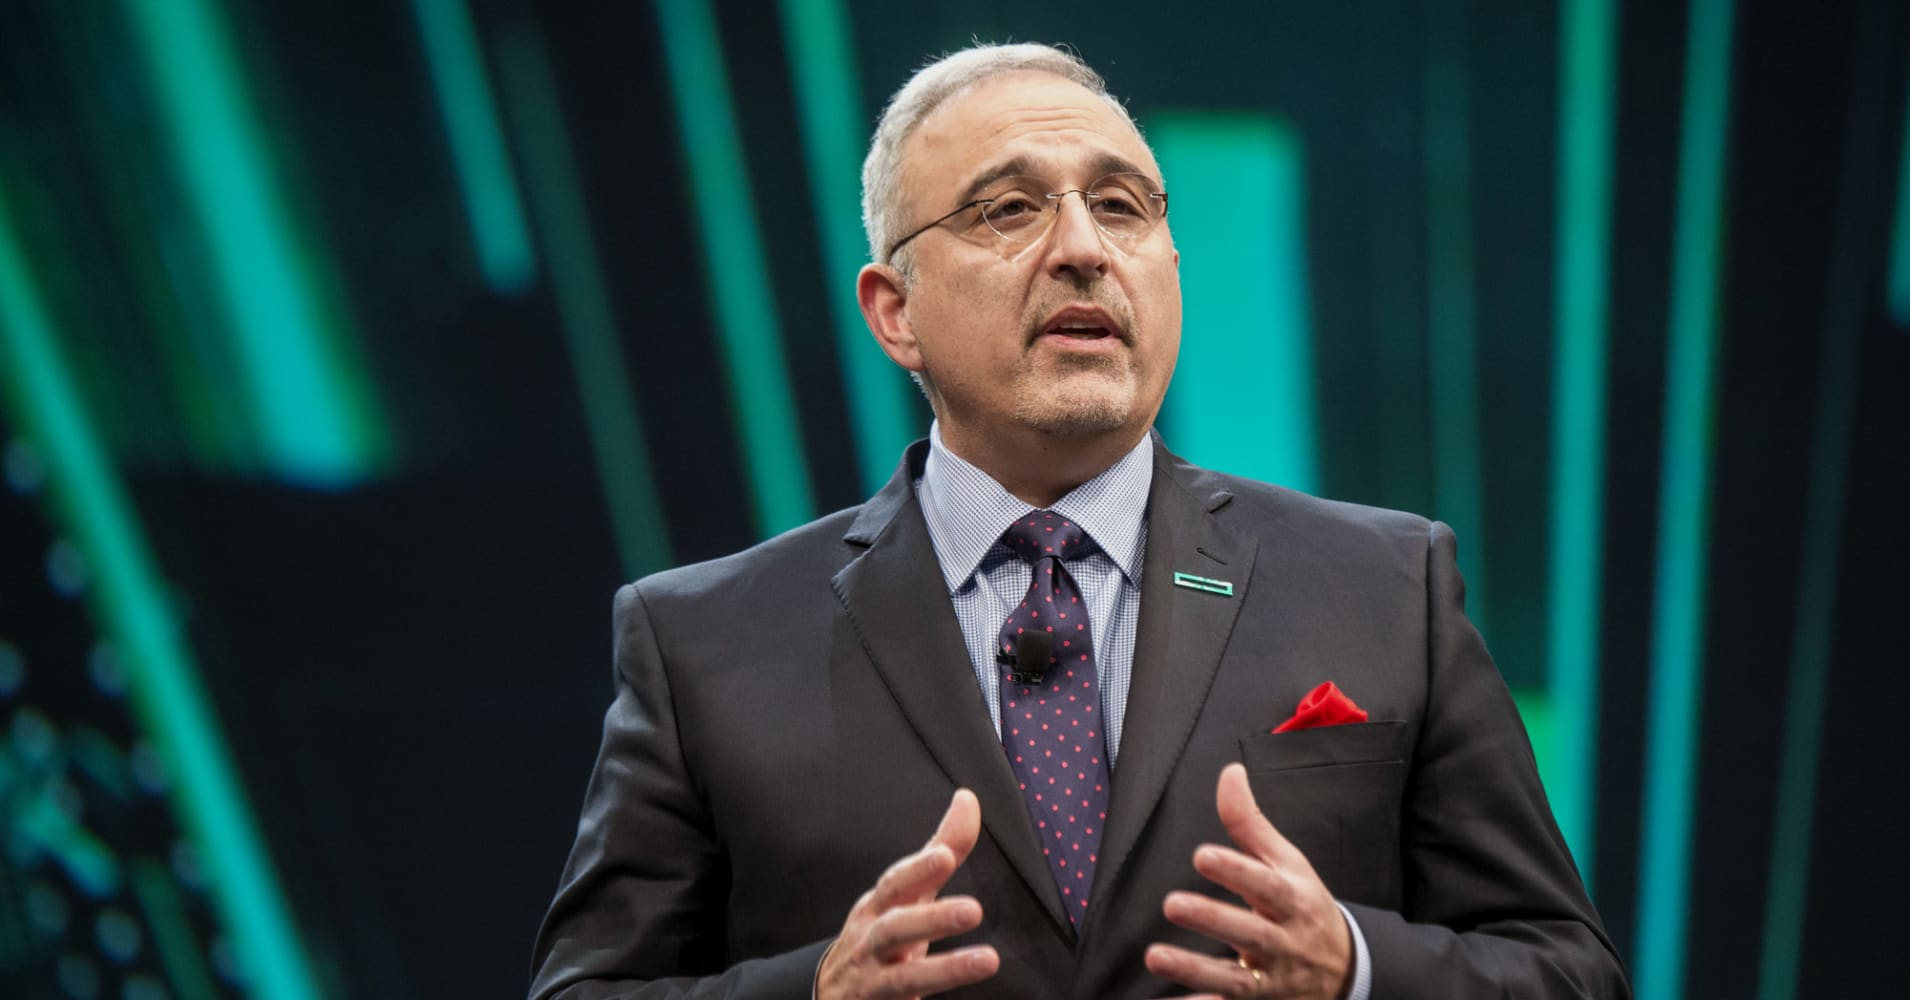 HPE shares fall after CEO told investors to expect a 'challenging second half'